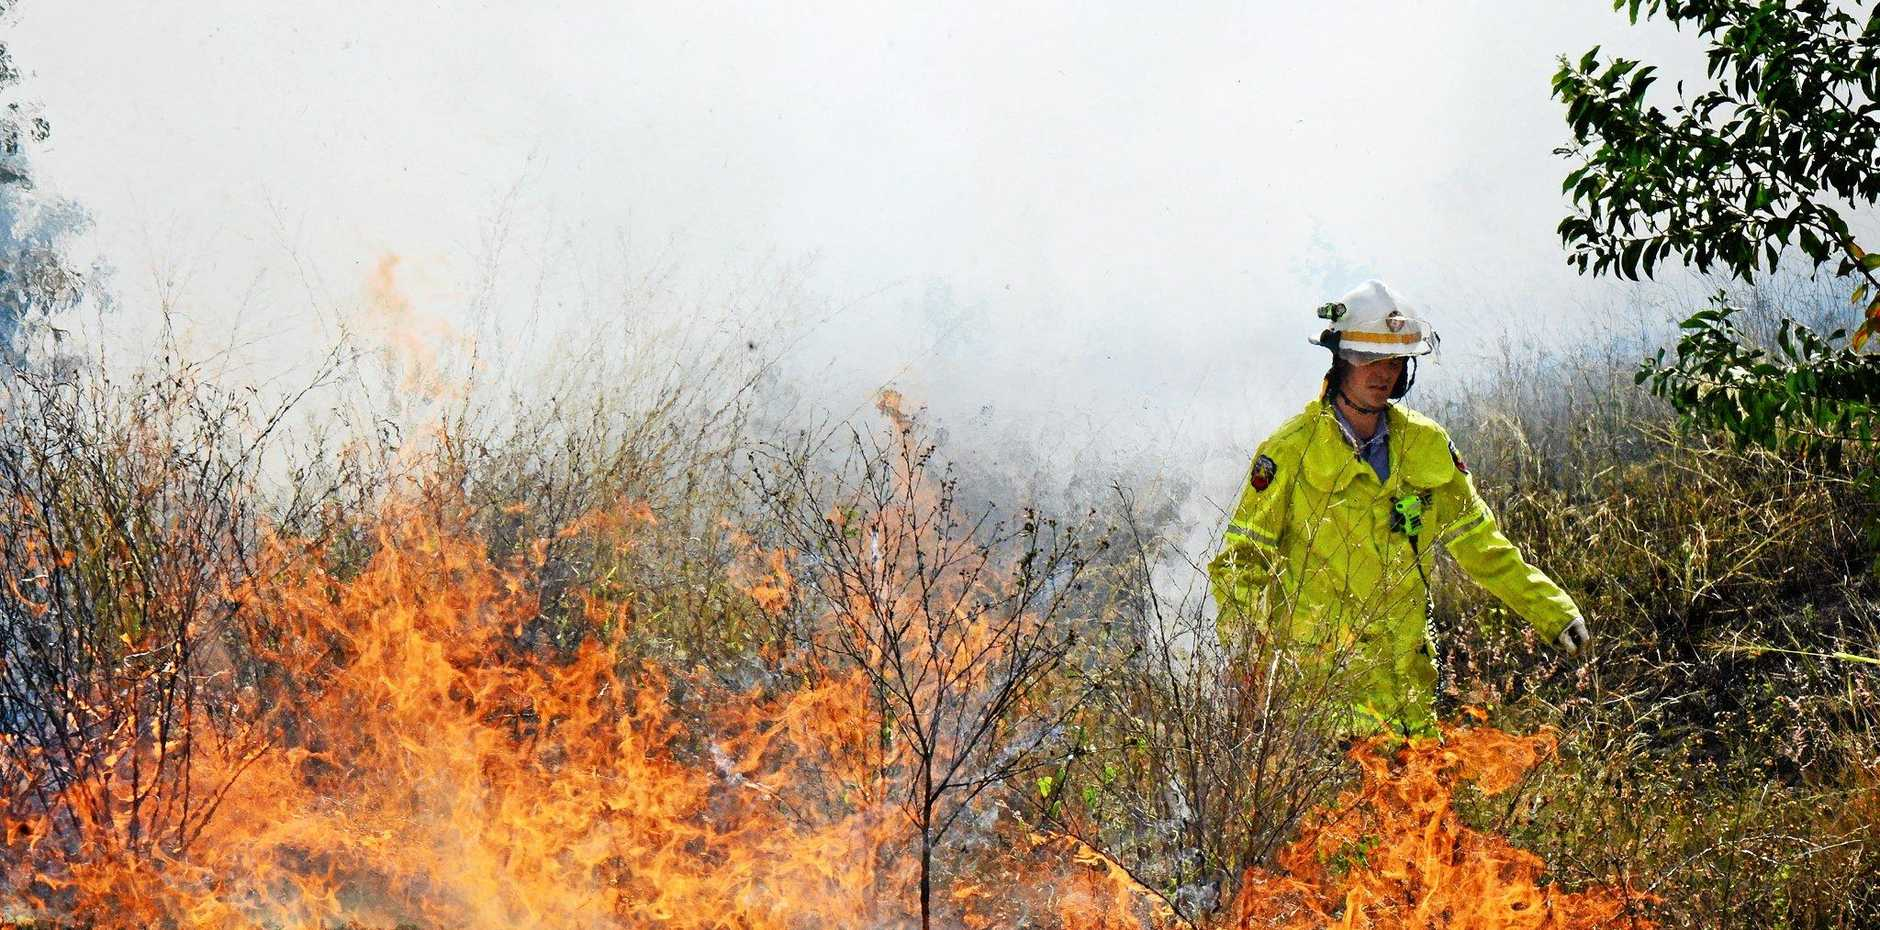 A hazard reduction burn planned for the Caloundra area has been postponed.